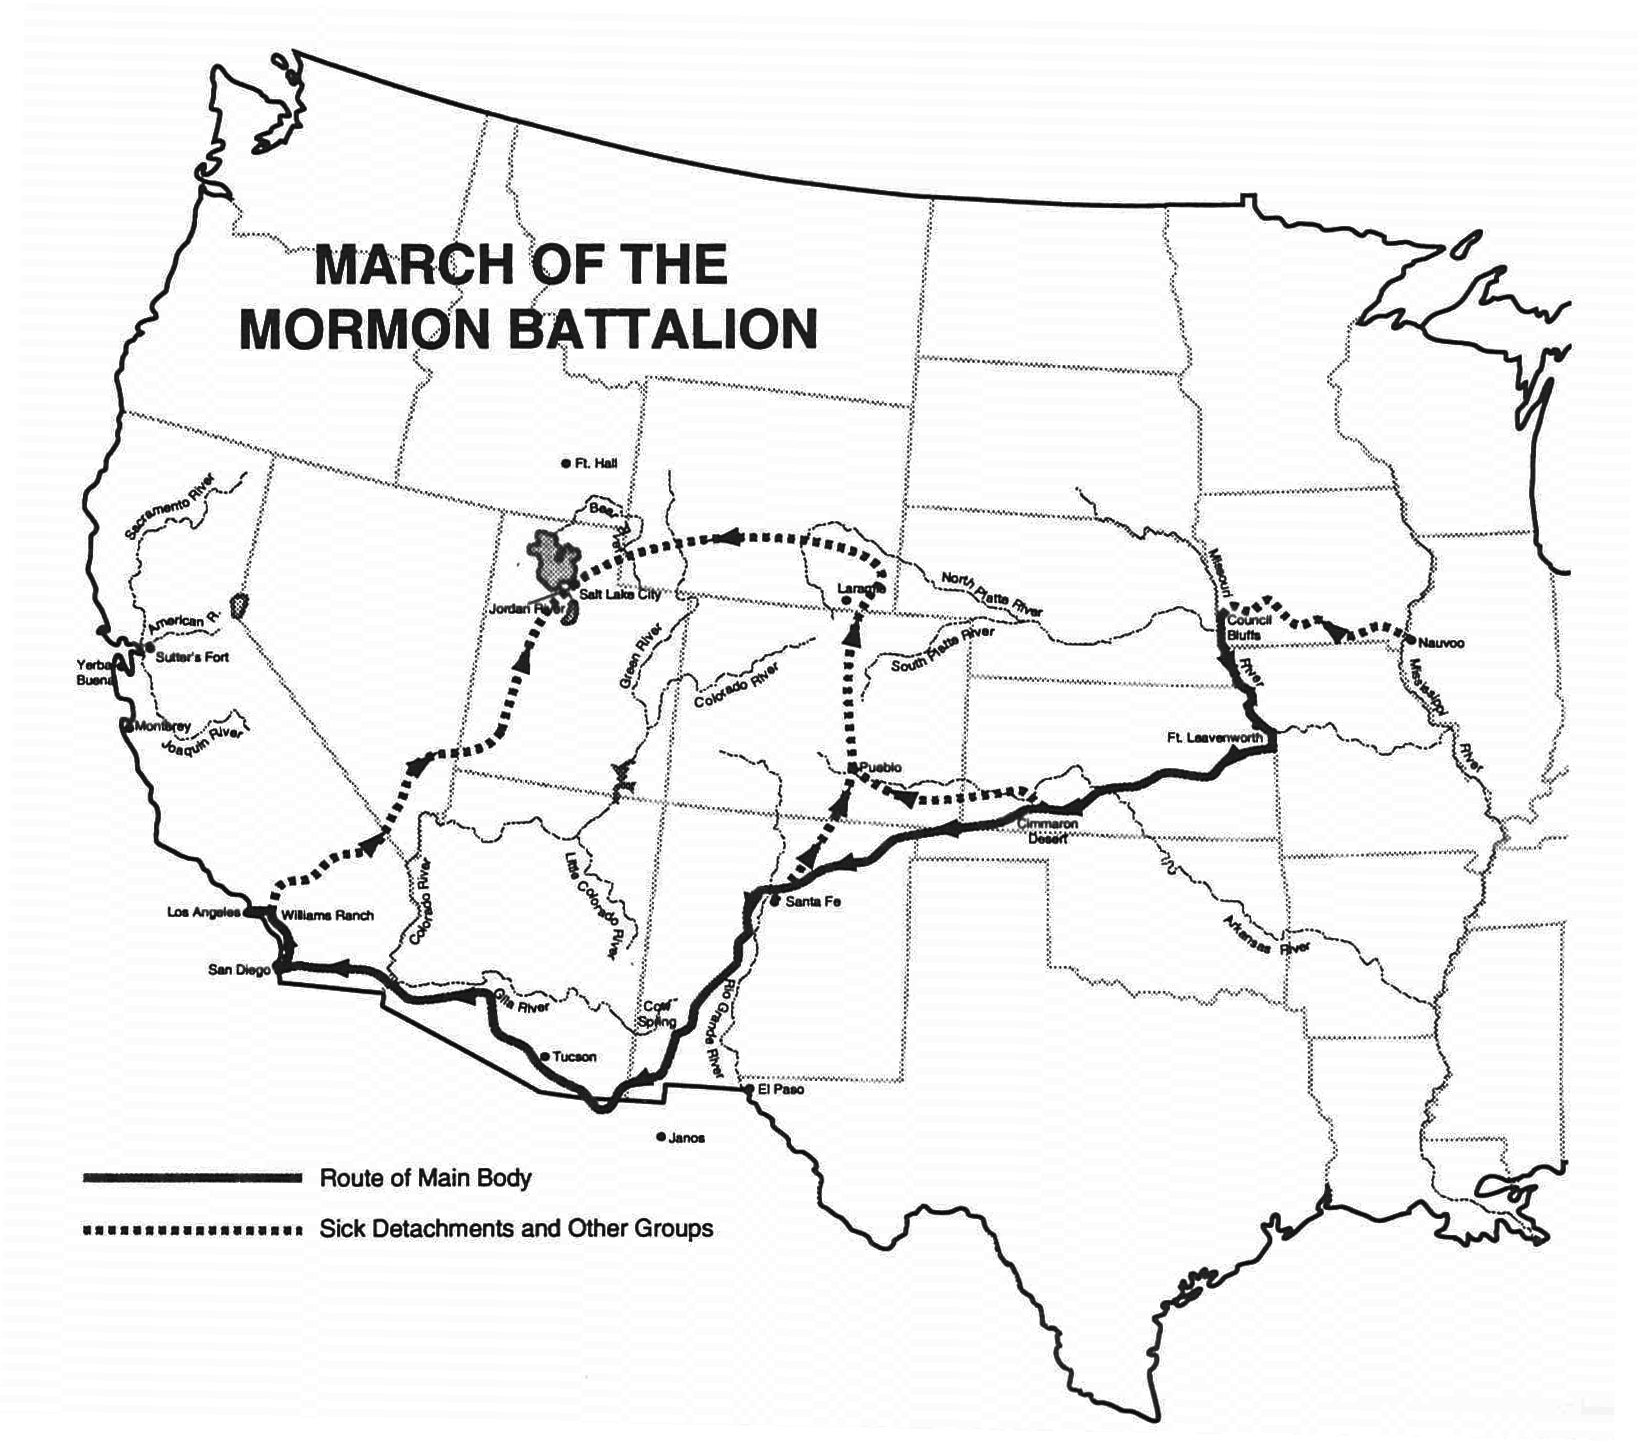 Map detailing the march of the Mormon Battalion